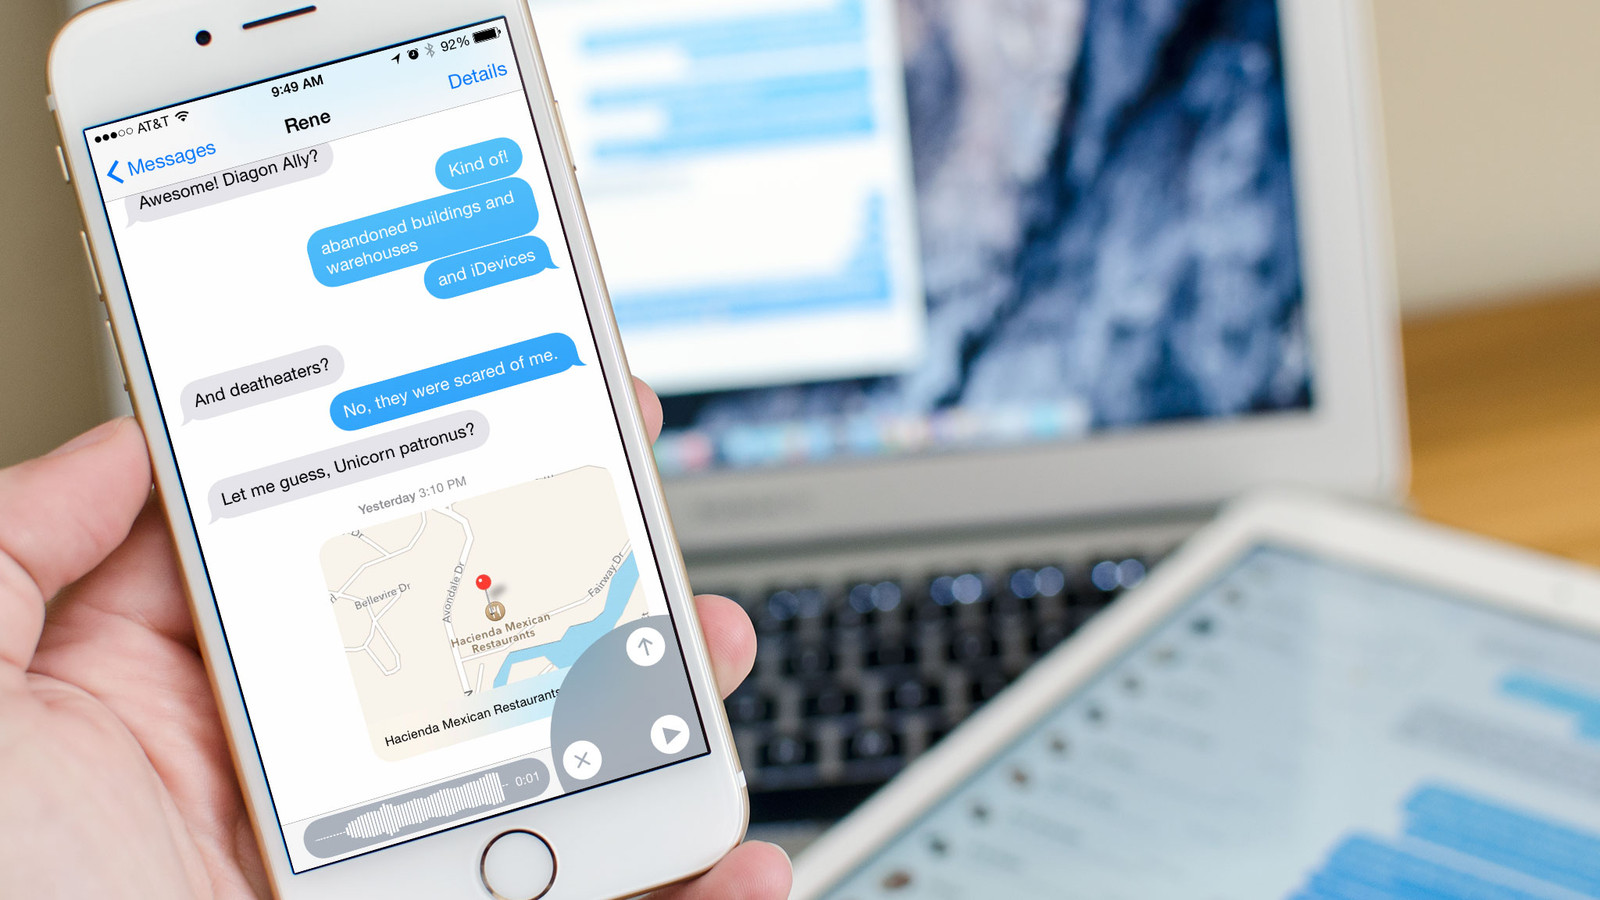 imessage_ultimate_guide_updated_ios_8_hero